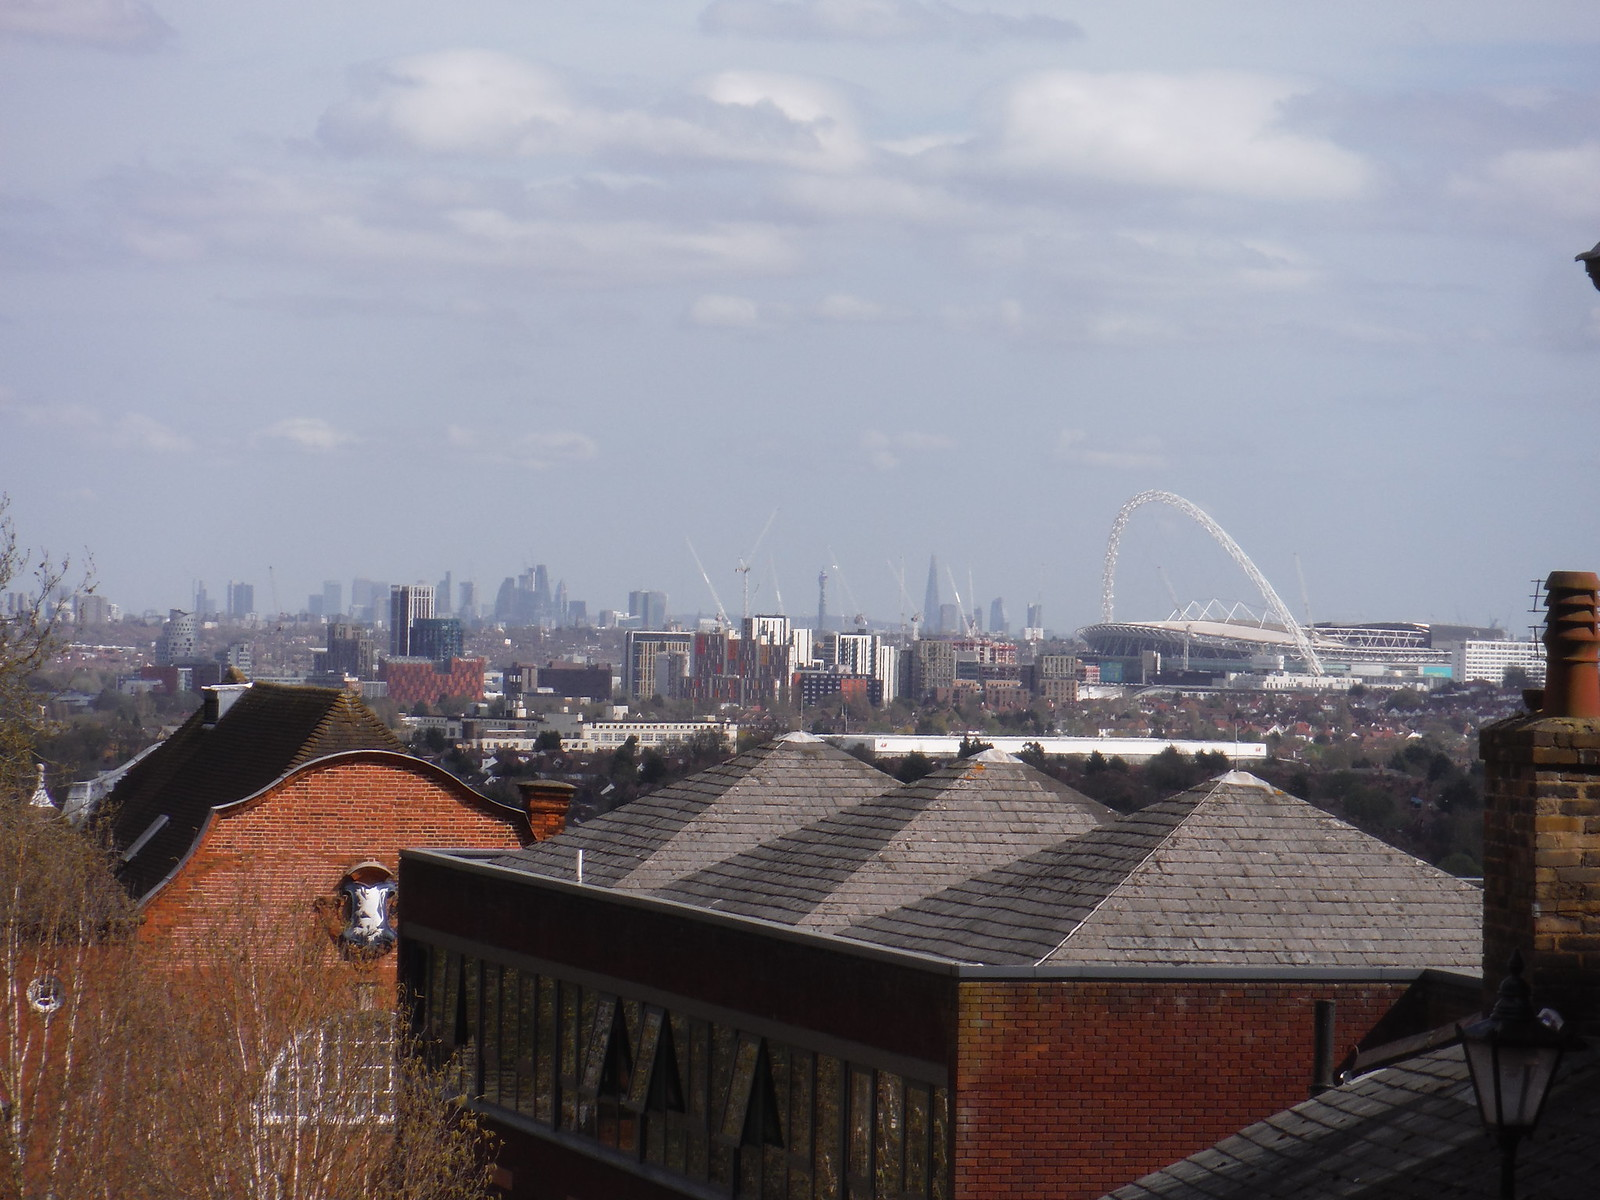 Central London and Wembley Stadium across Harrow's Roofs SWC Short Walk 40 - Harrow-on-the-Hill (South Kenton or Northwick Park to Harrow-on-the-Hill)